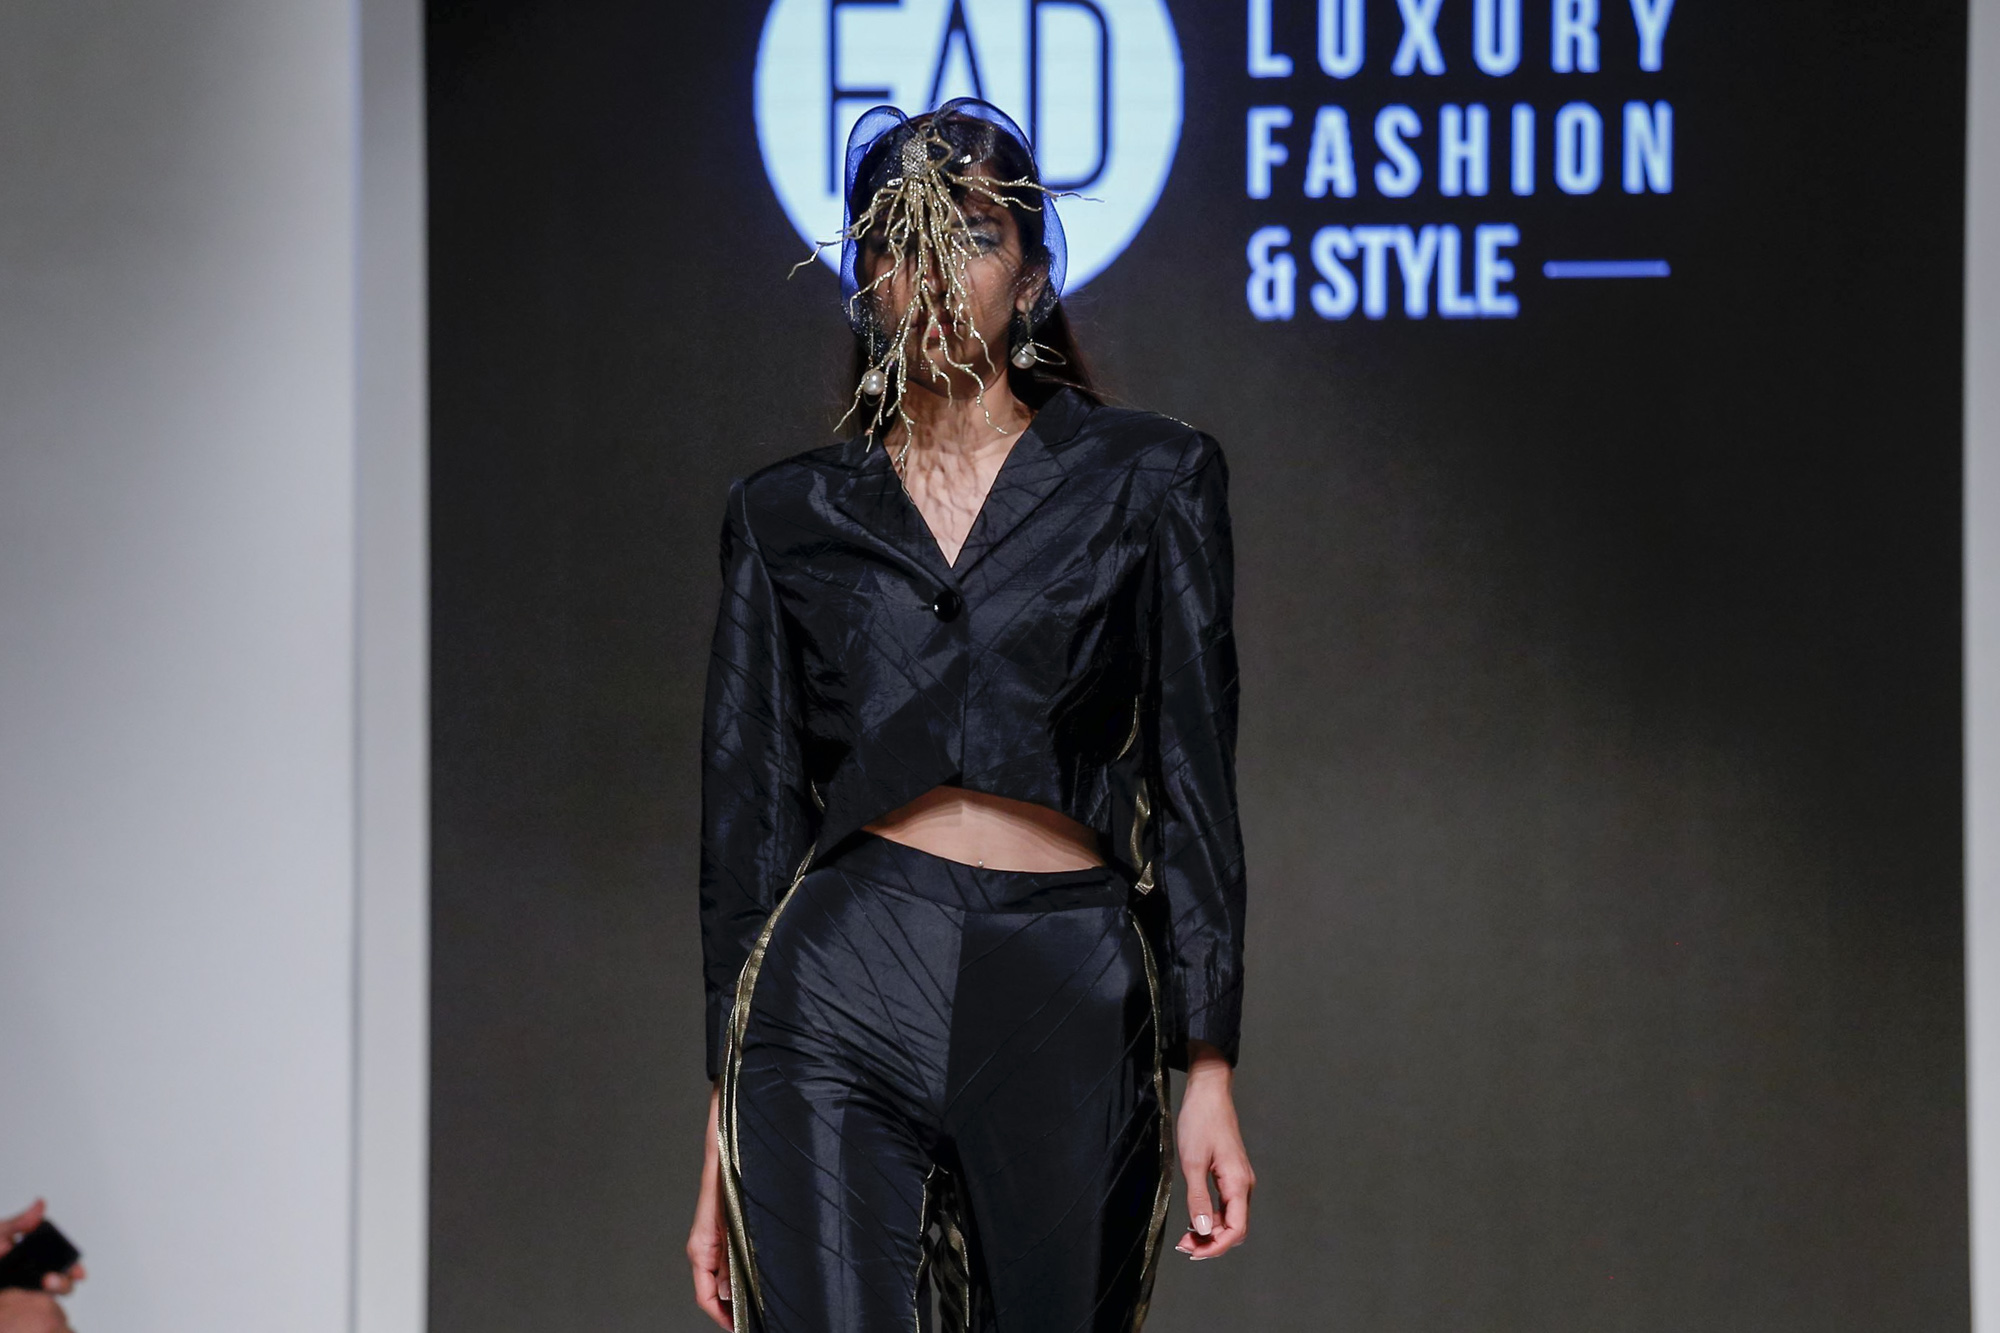 FAD INSTITUTE OF LUXURY FASHION & STYLE 2019 Collection Arab Fashion Week in Dubai